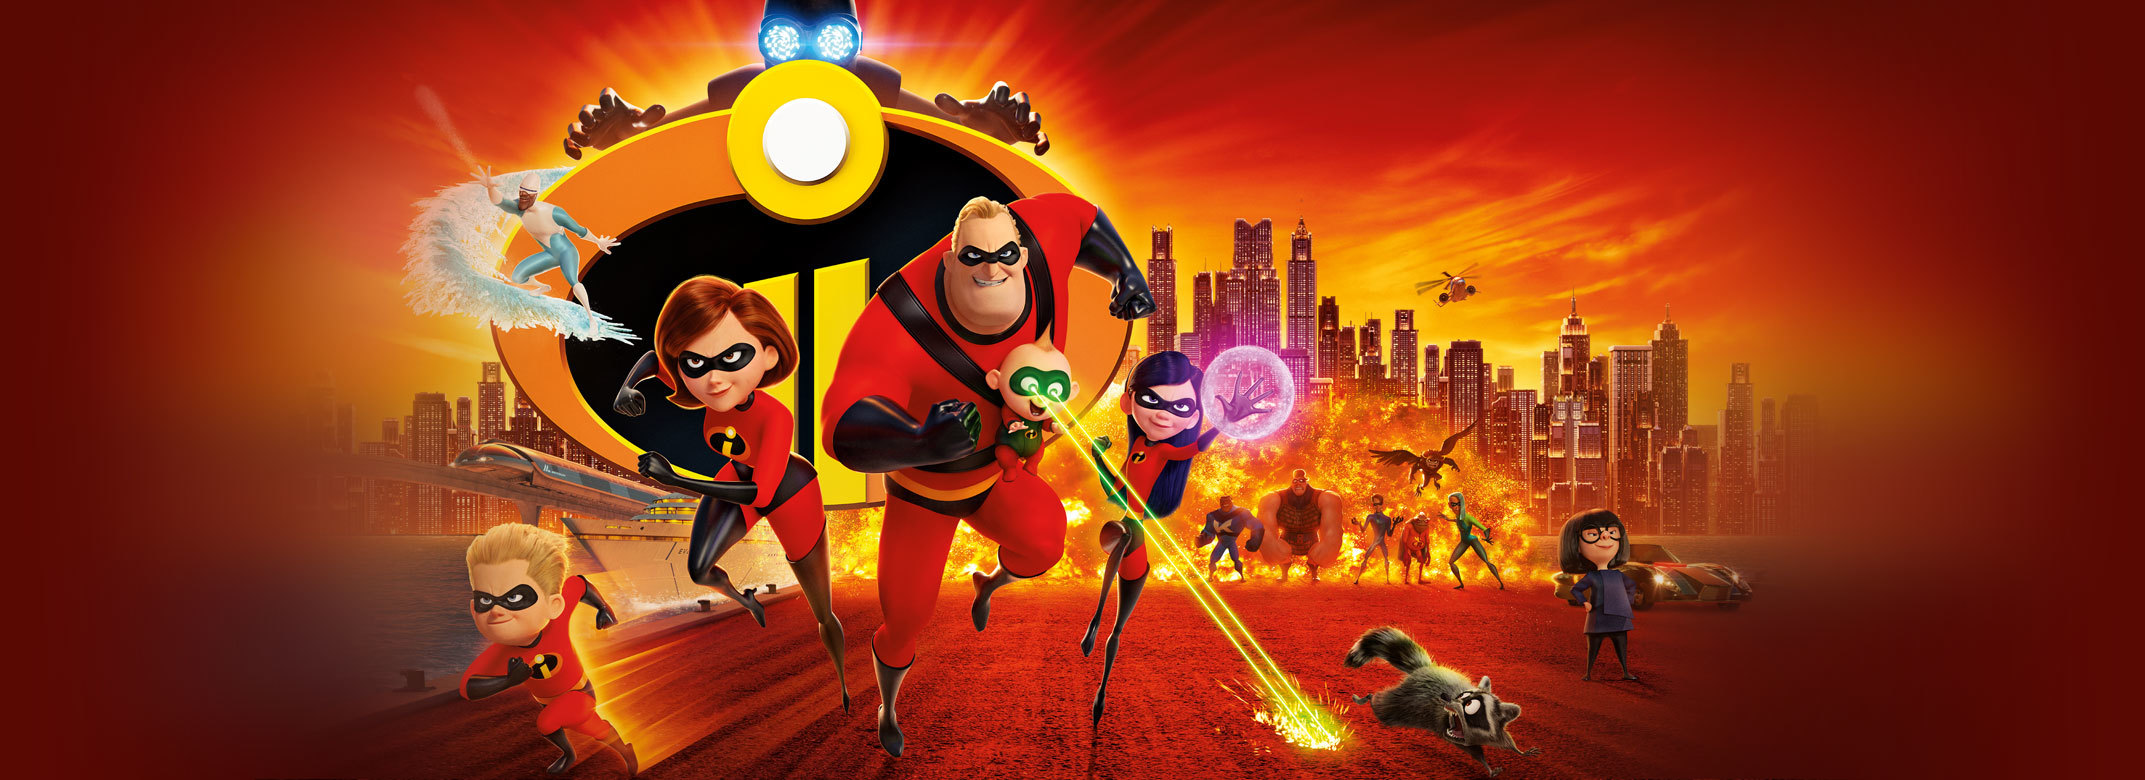 download movies couch download incredibles 2 moviescouch hd podbean